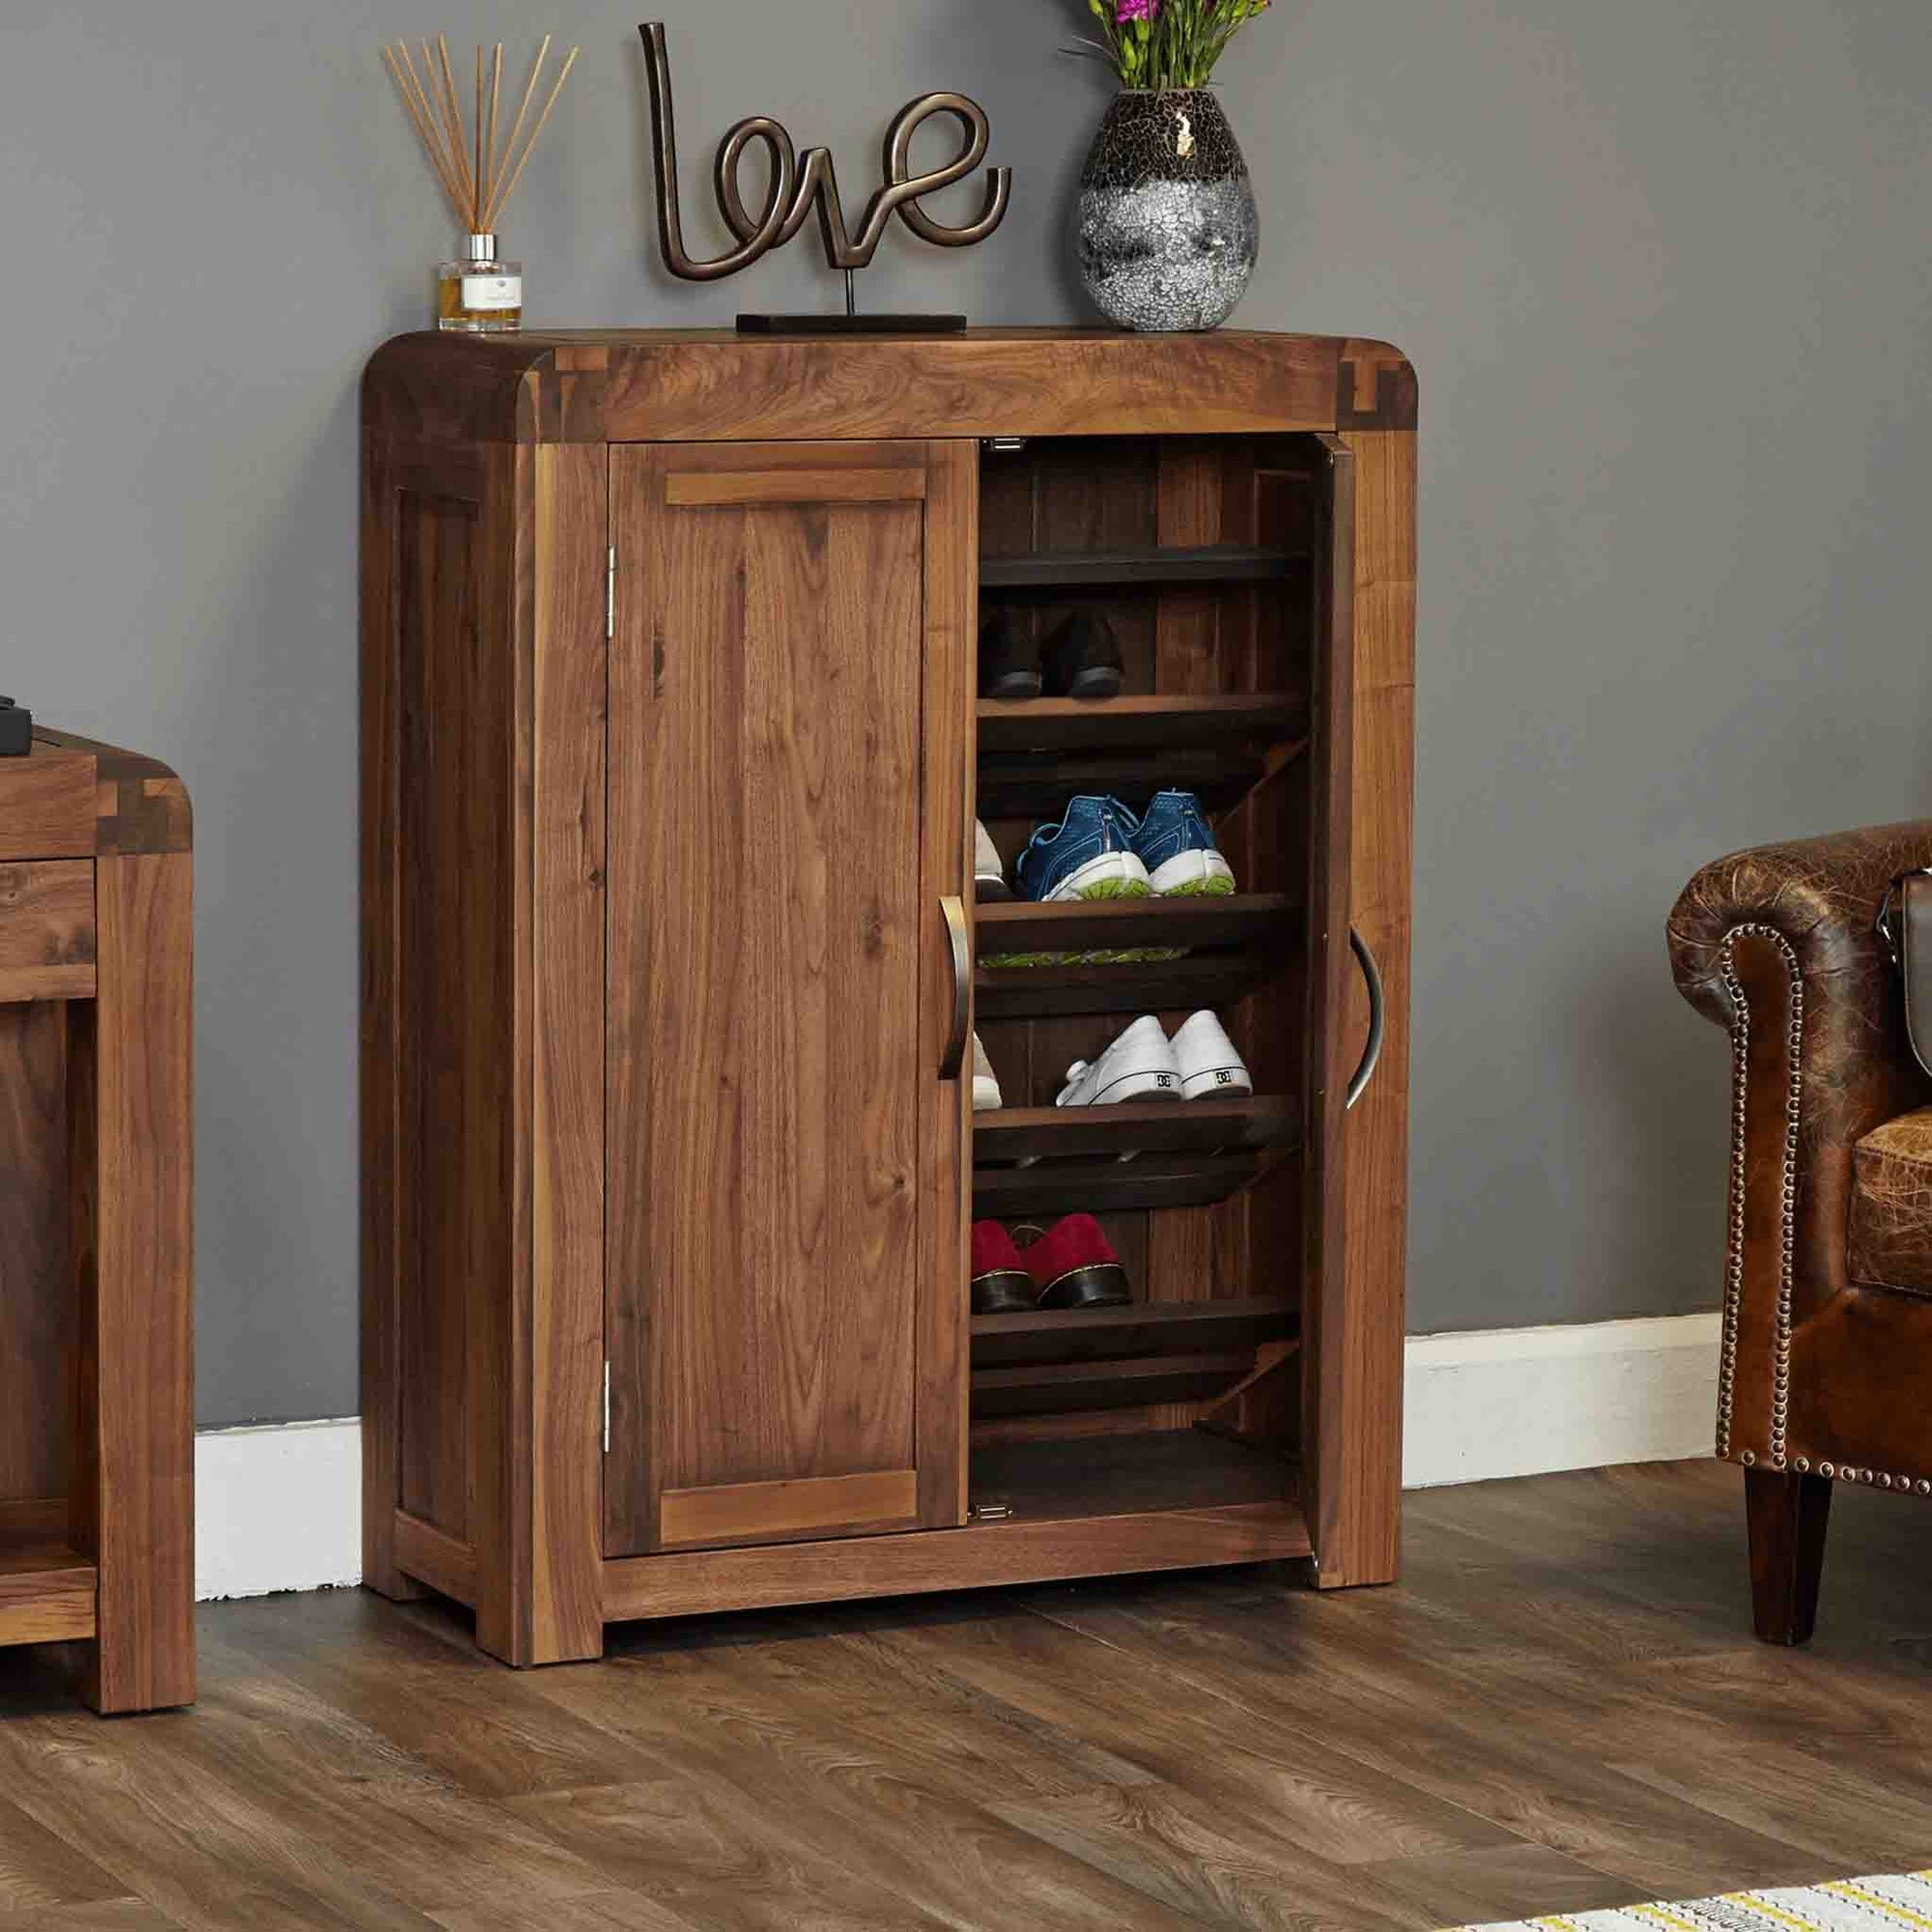 The Salem Walnut Large Wooden Shoe Storage Cupboard from Roseland Furniture